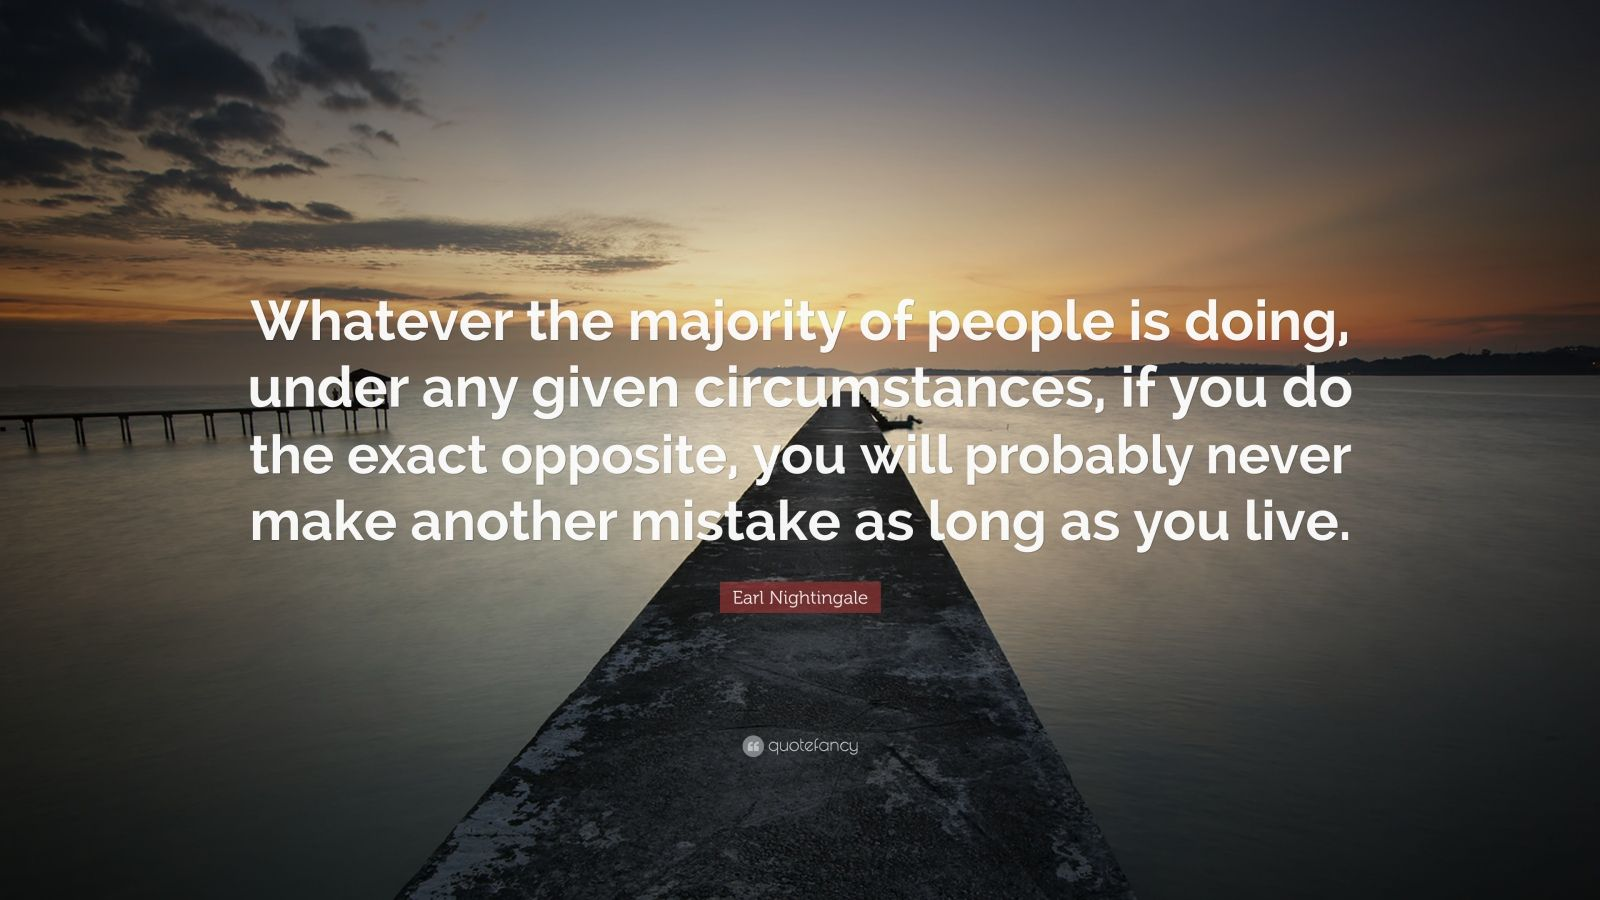 """Earl Nightingale Quote: """"Whatever the majority of people is doing, under any given circumstances, if you do the exact opposite, you will probably never make another mistake as long as you live."""""""